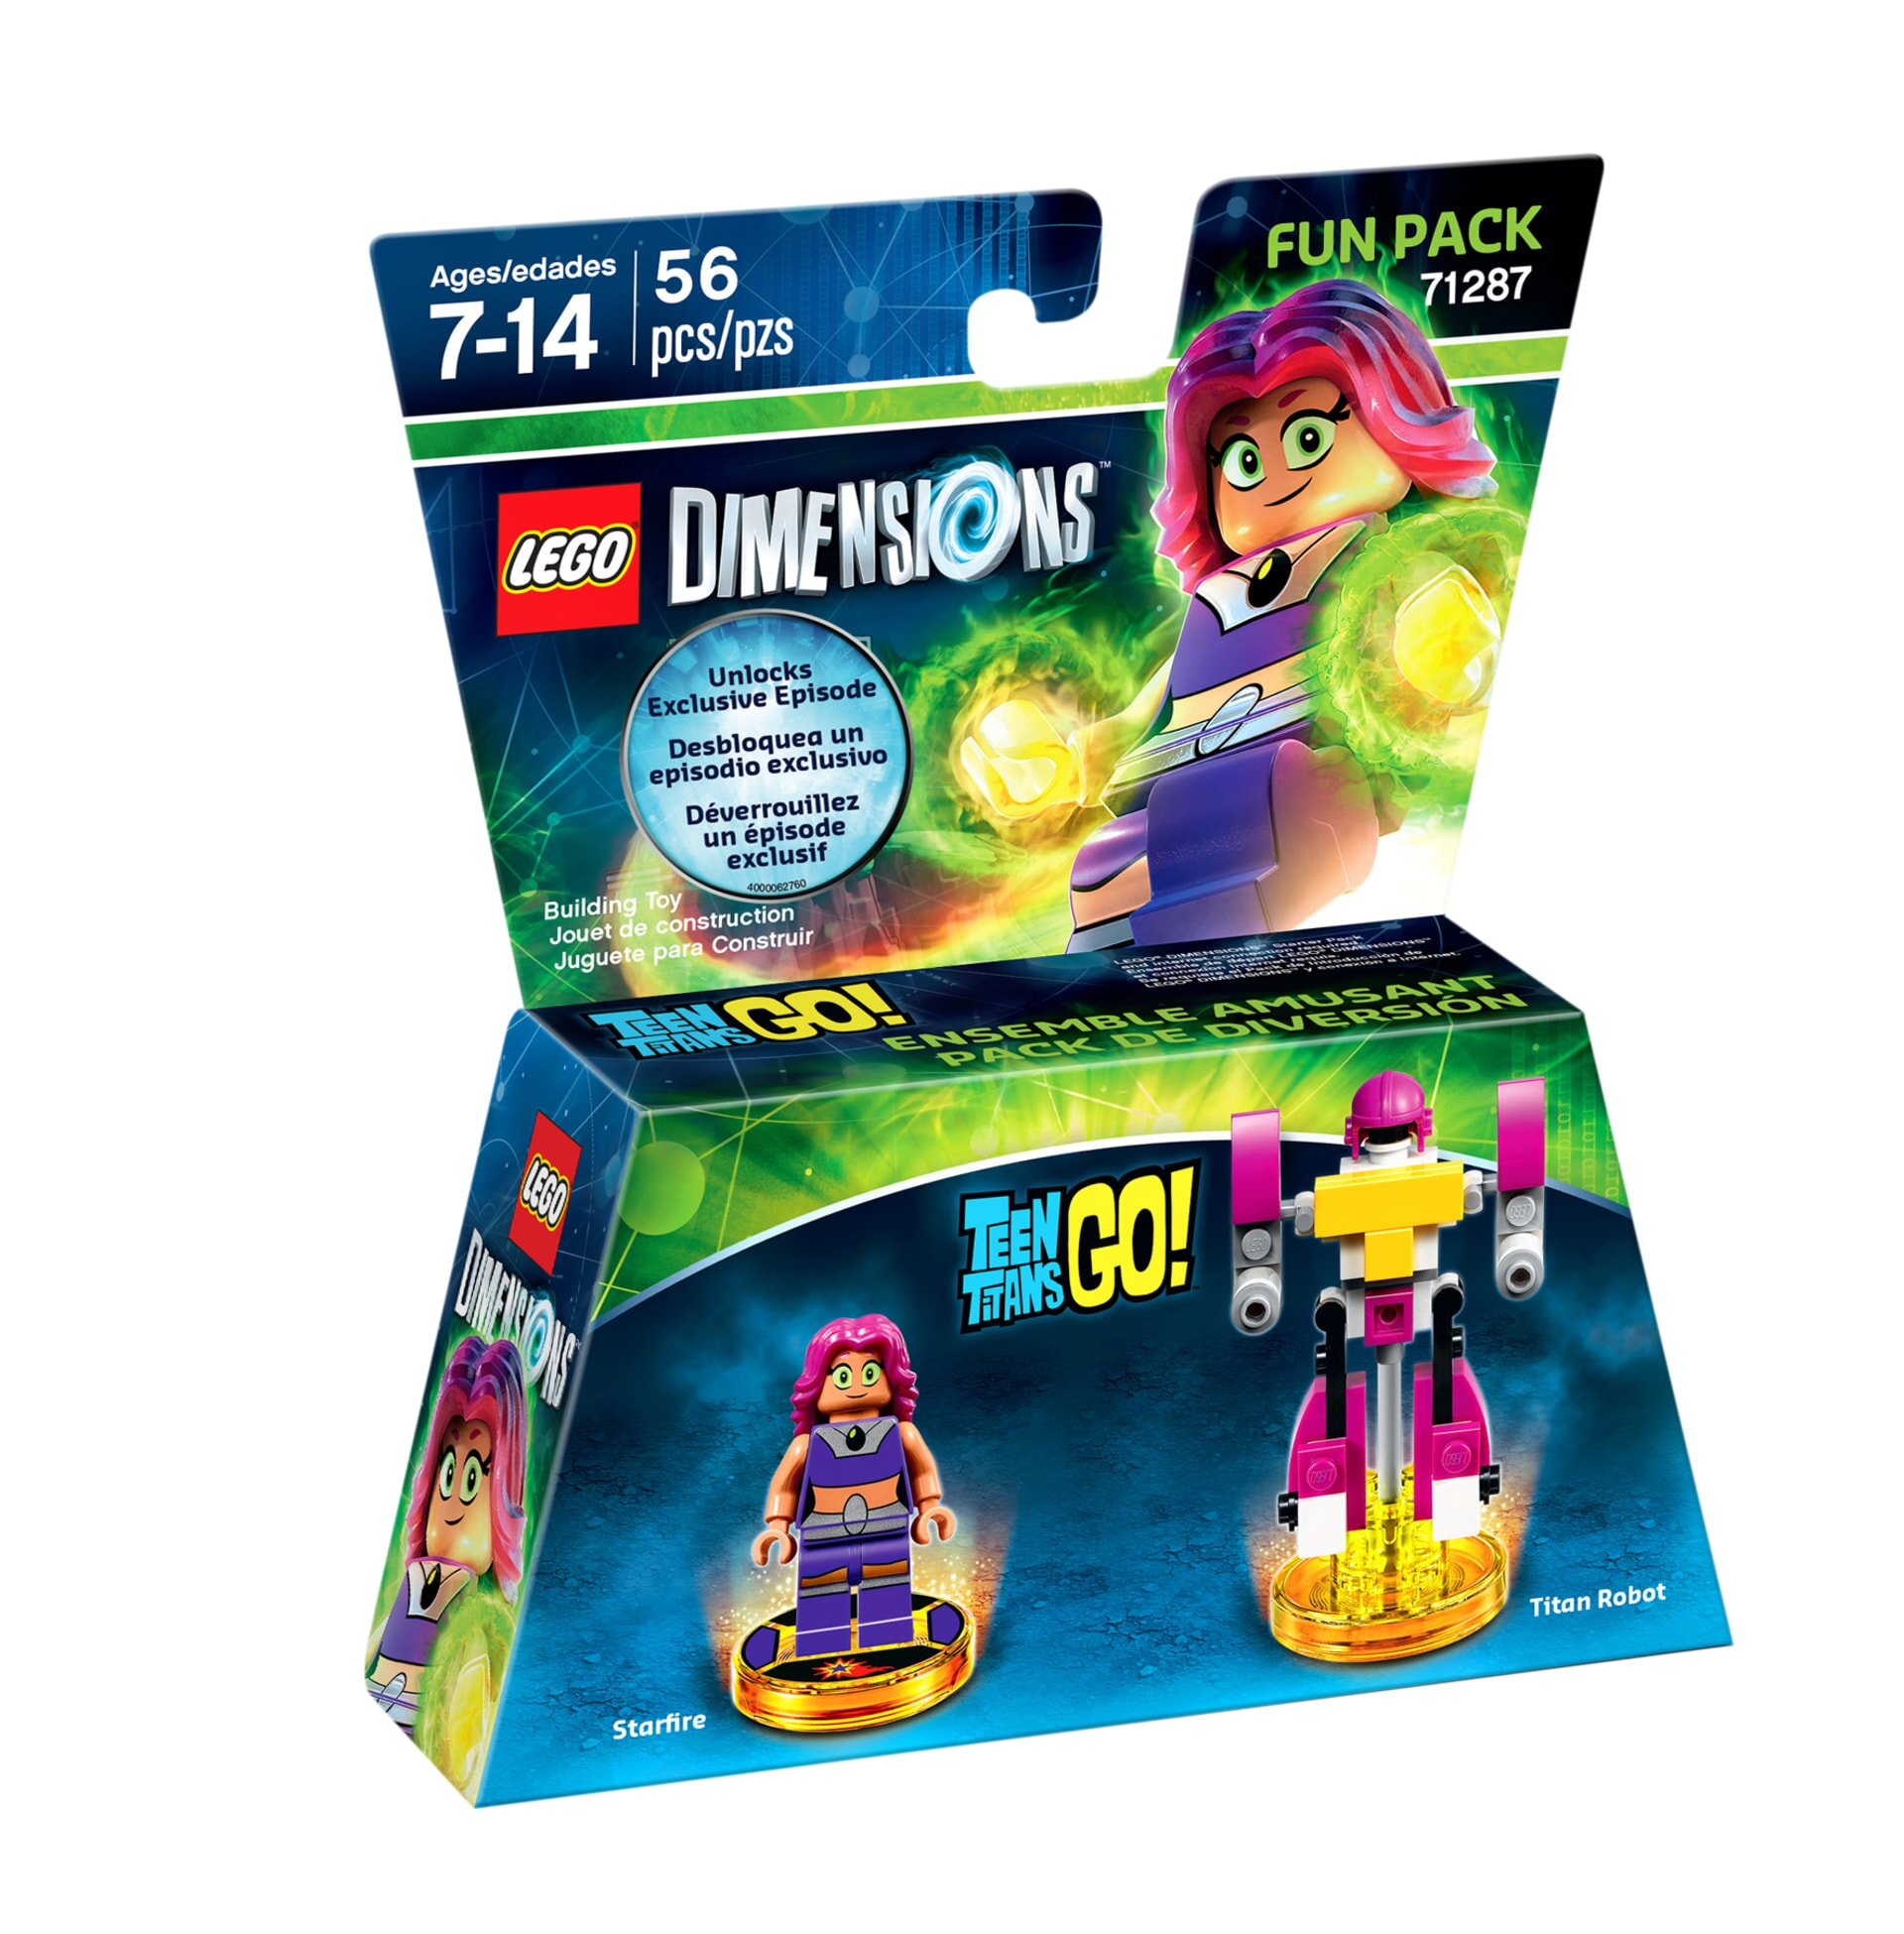 Starfire LEGO Dimensions expansion pack